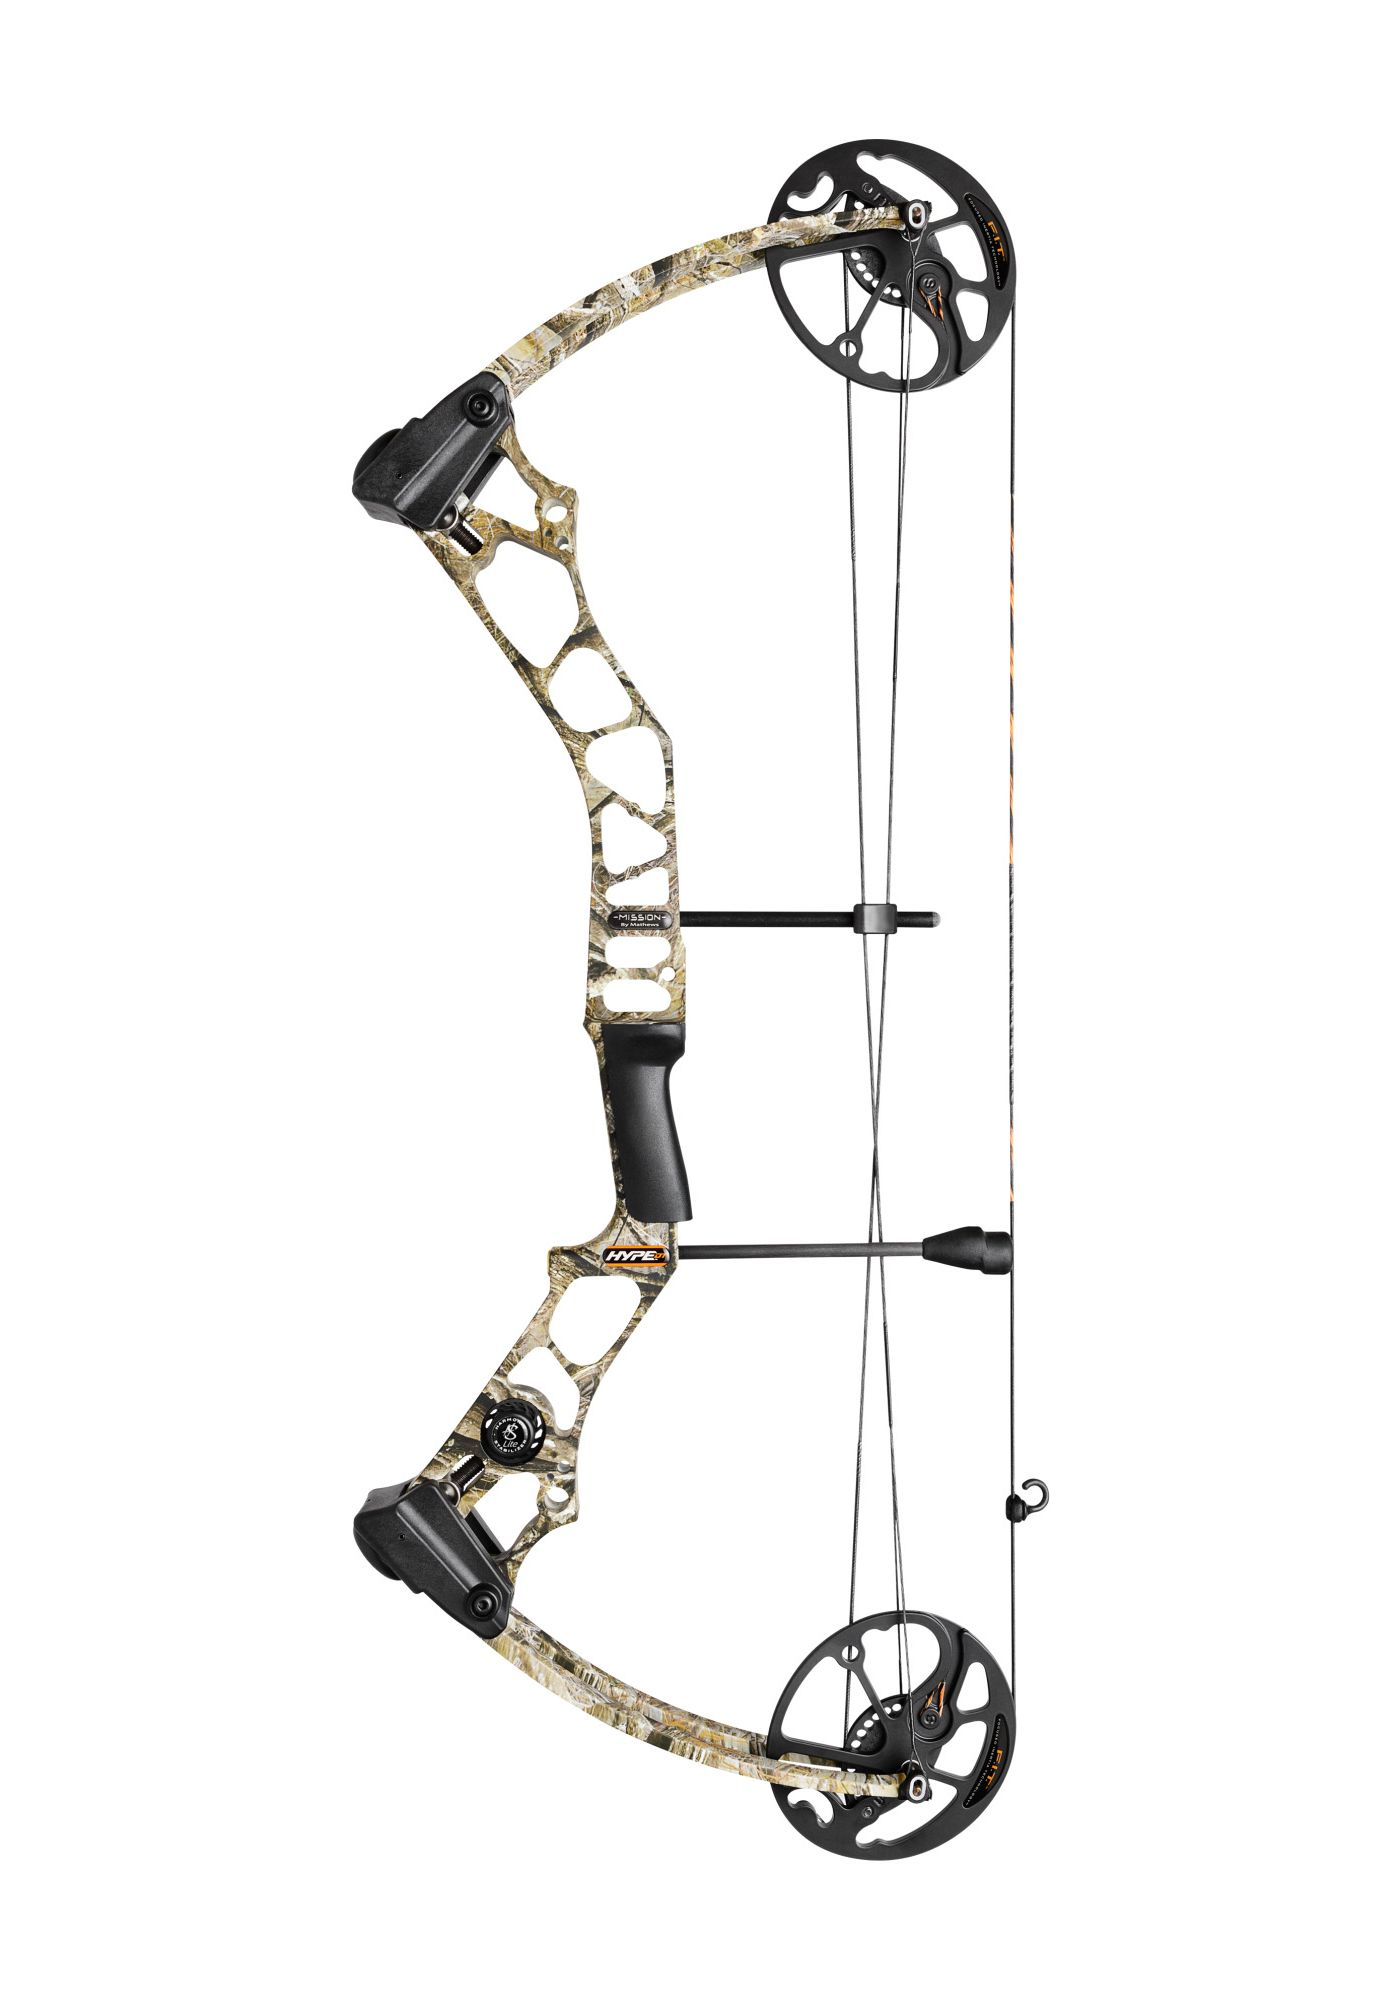 Mission Hype DT Compound Bow QAD Package